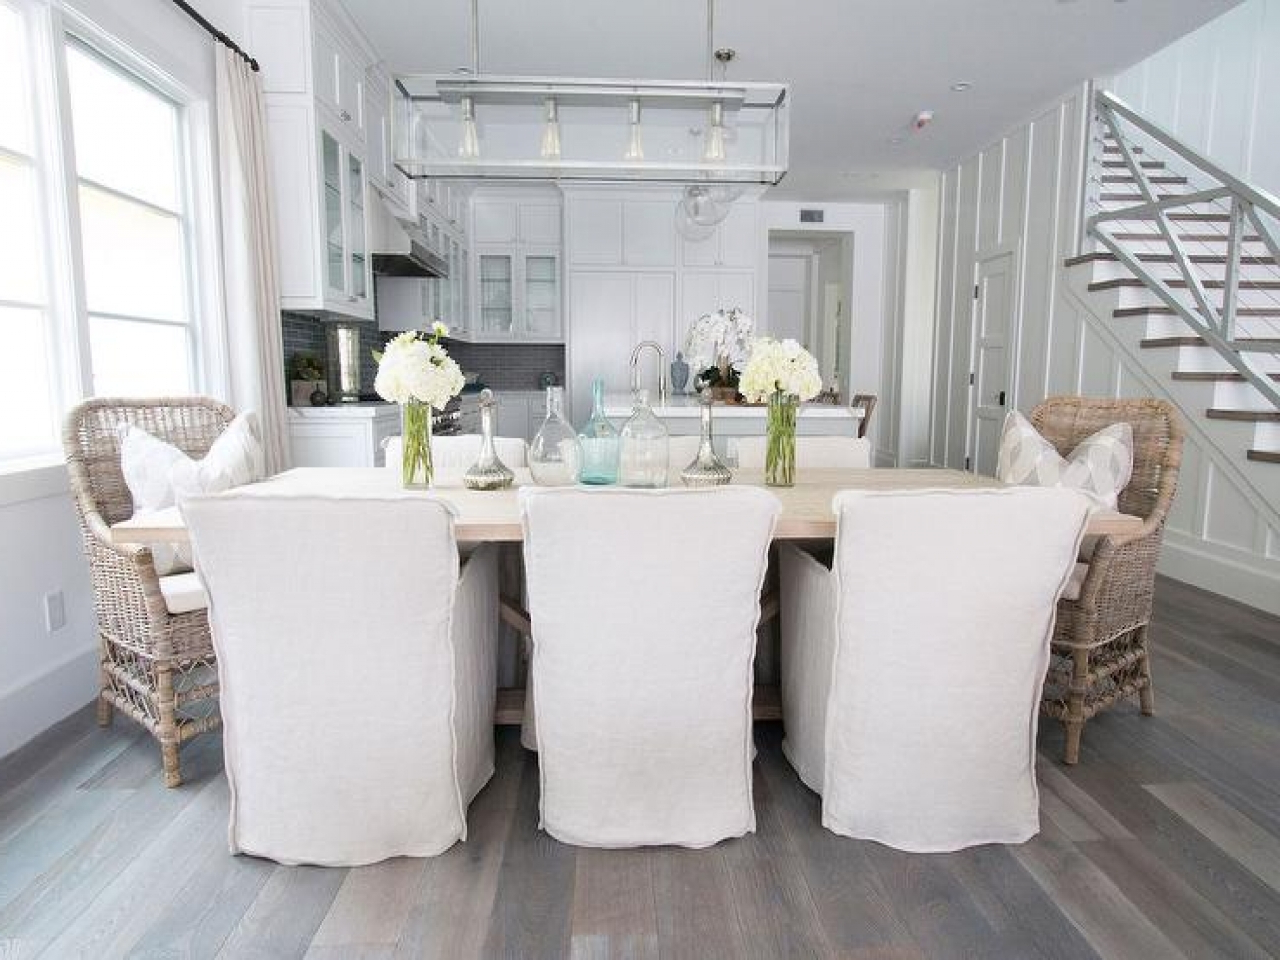 Reclaimed Wood Dining Table With Slipcovered Chairs Room throughout Famous Bowry Reclaimed Wood Dining Tables